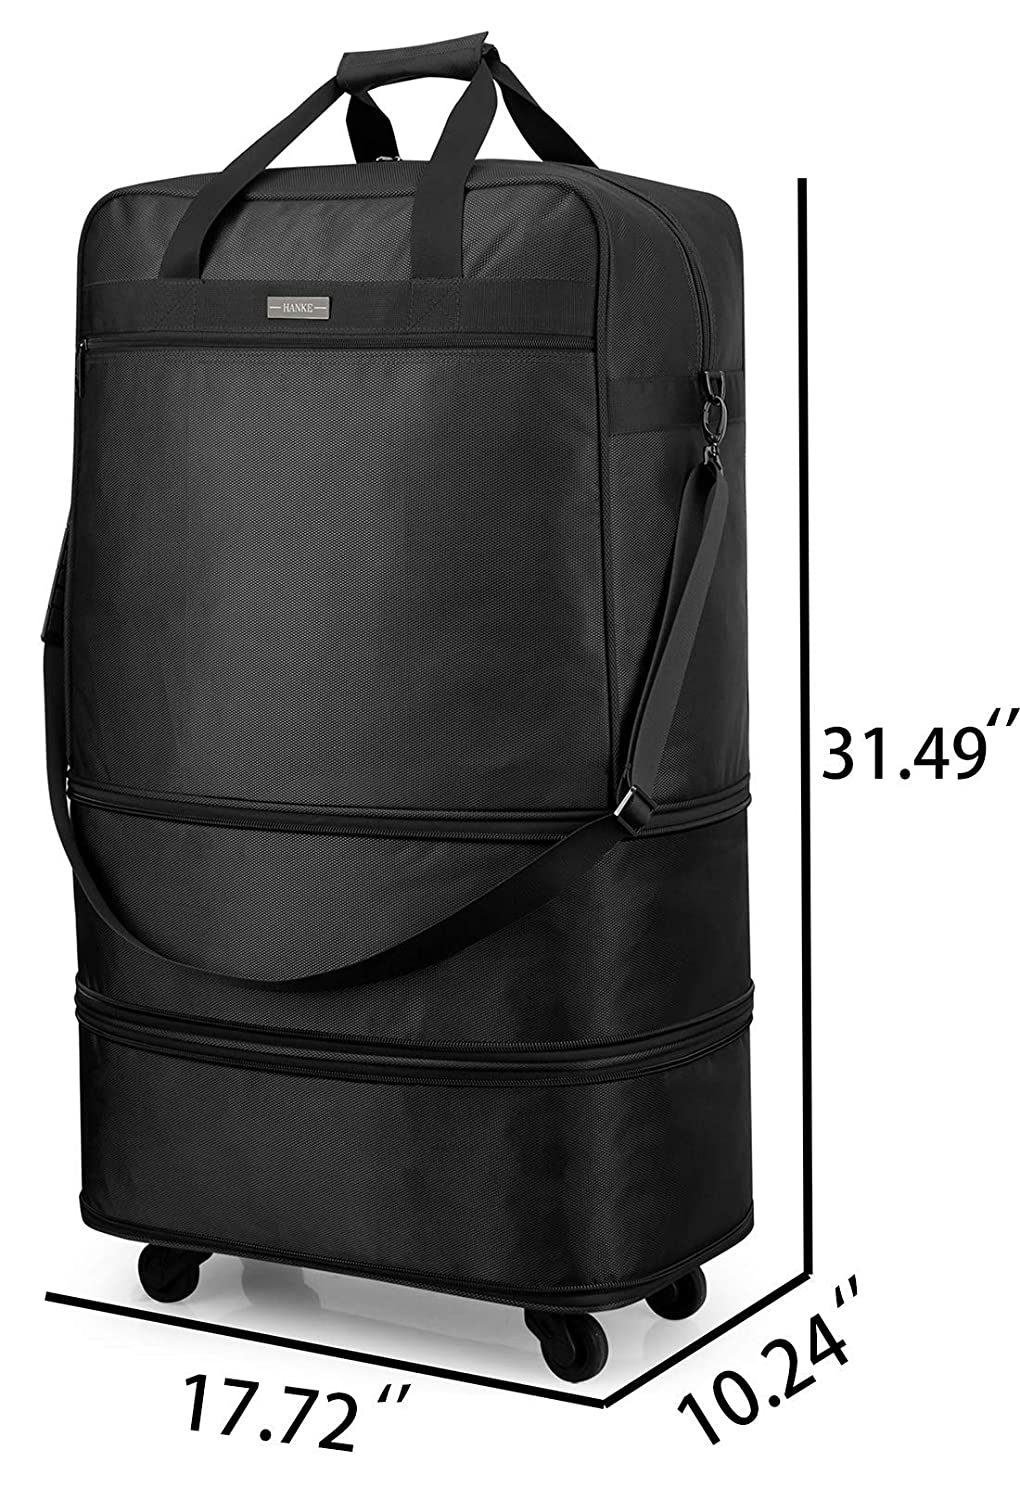 Hanke Expandable Foldable Suitcase Luggage Rolling Travel Bag Duffel Tote  Bag for Men Women Lightweight Carry-on Suitcase Large Capacity Spinner  Luggage ... 690155a7d2110